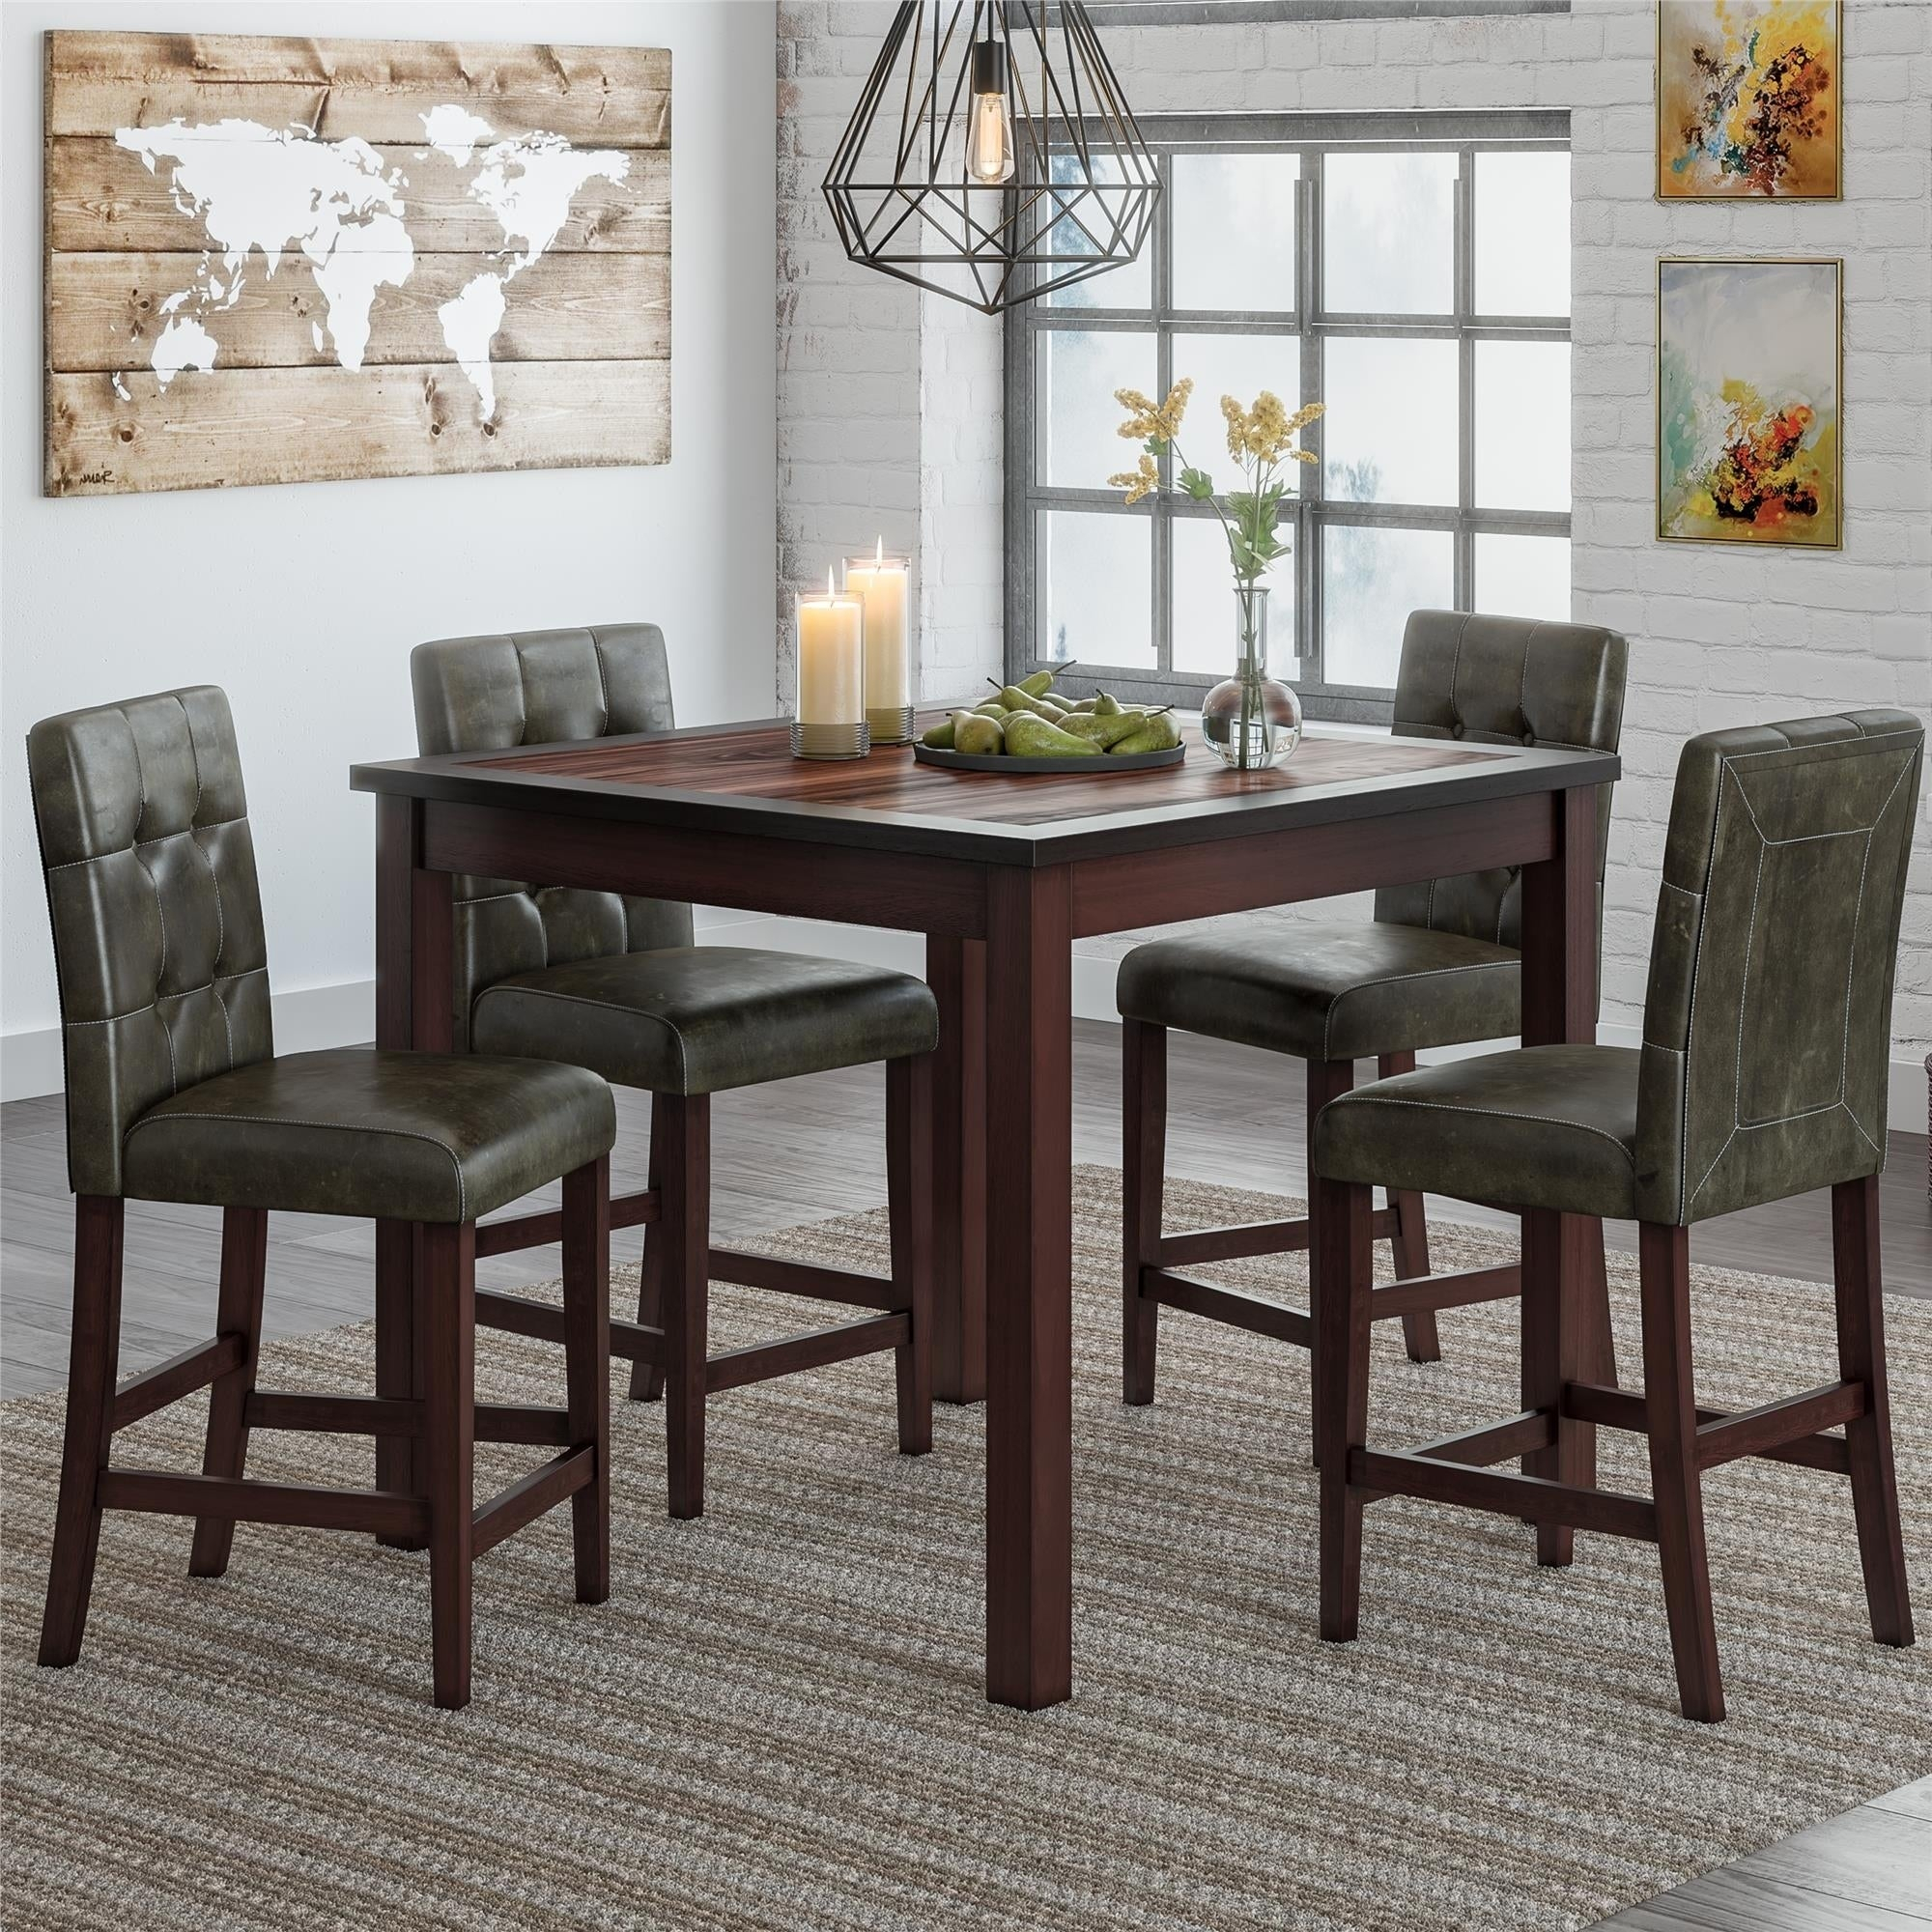 Gracewood Hollow Betancourt Espresso 5 Piece Counter Height Dining Set With Regard To Most Recent Bettencourt 3 Piece Counter Height Solid Wood Dining Sets (View 19 of 20)